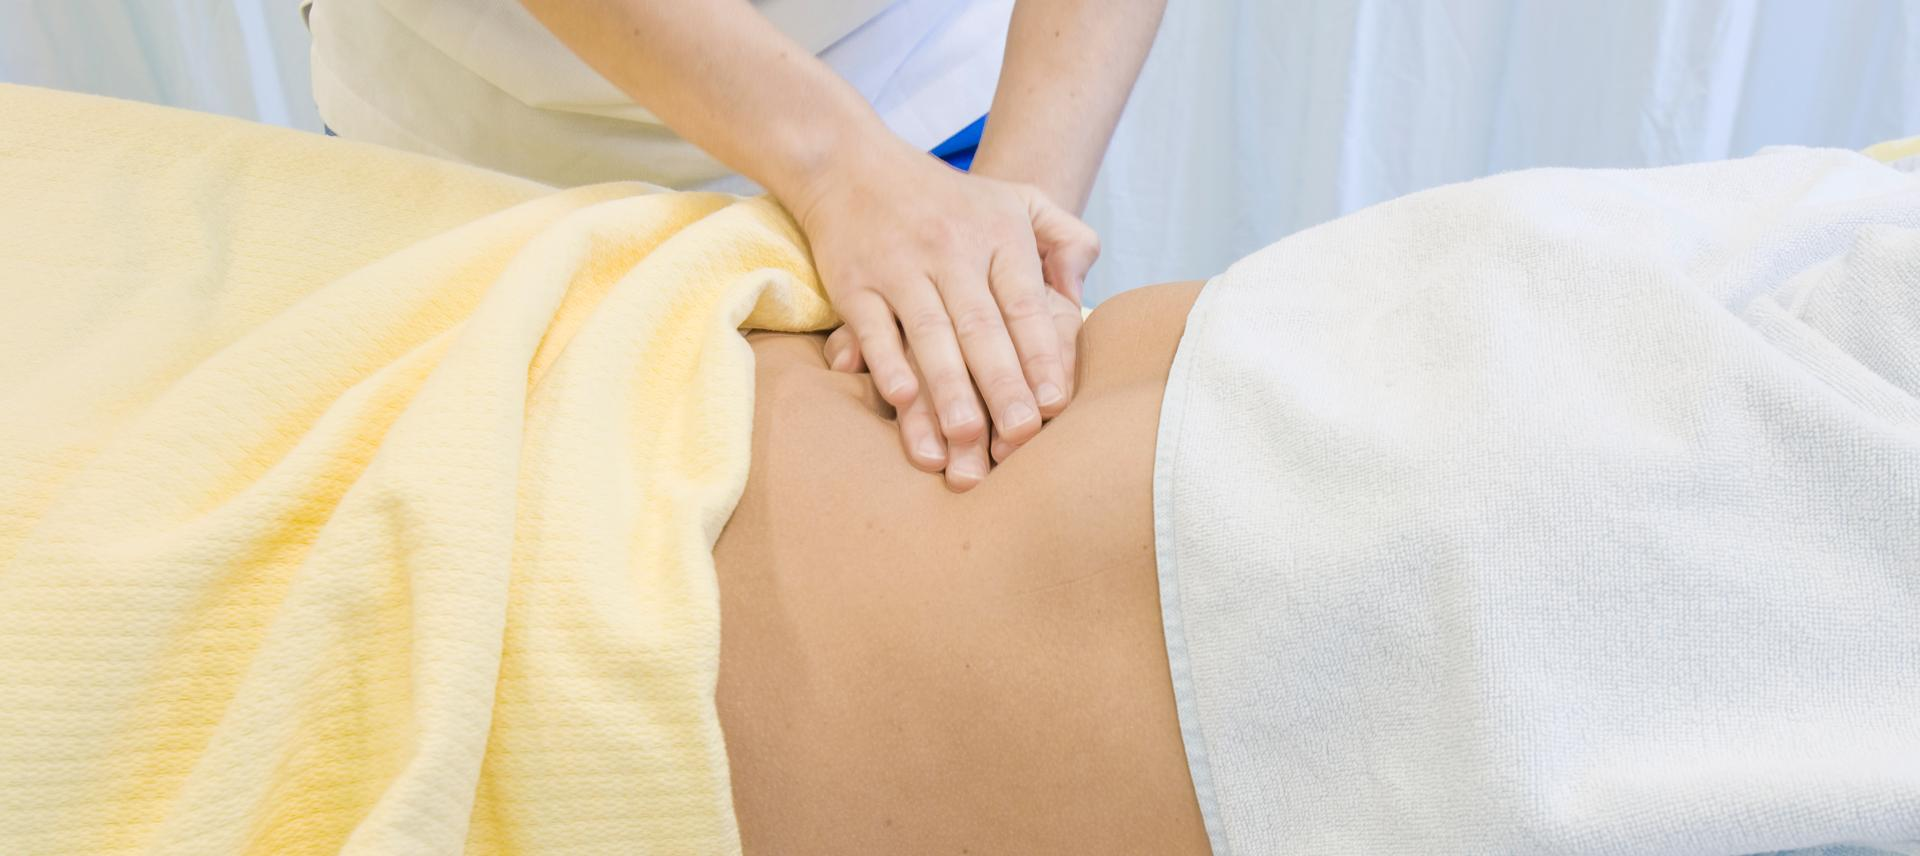 Rueckenmassage durch Physiotherapeut